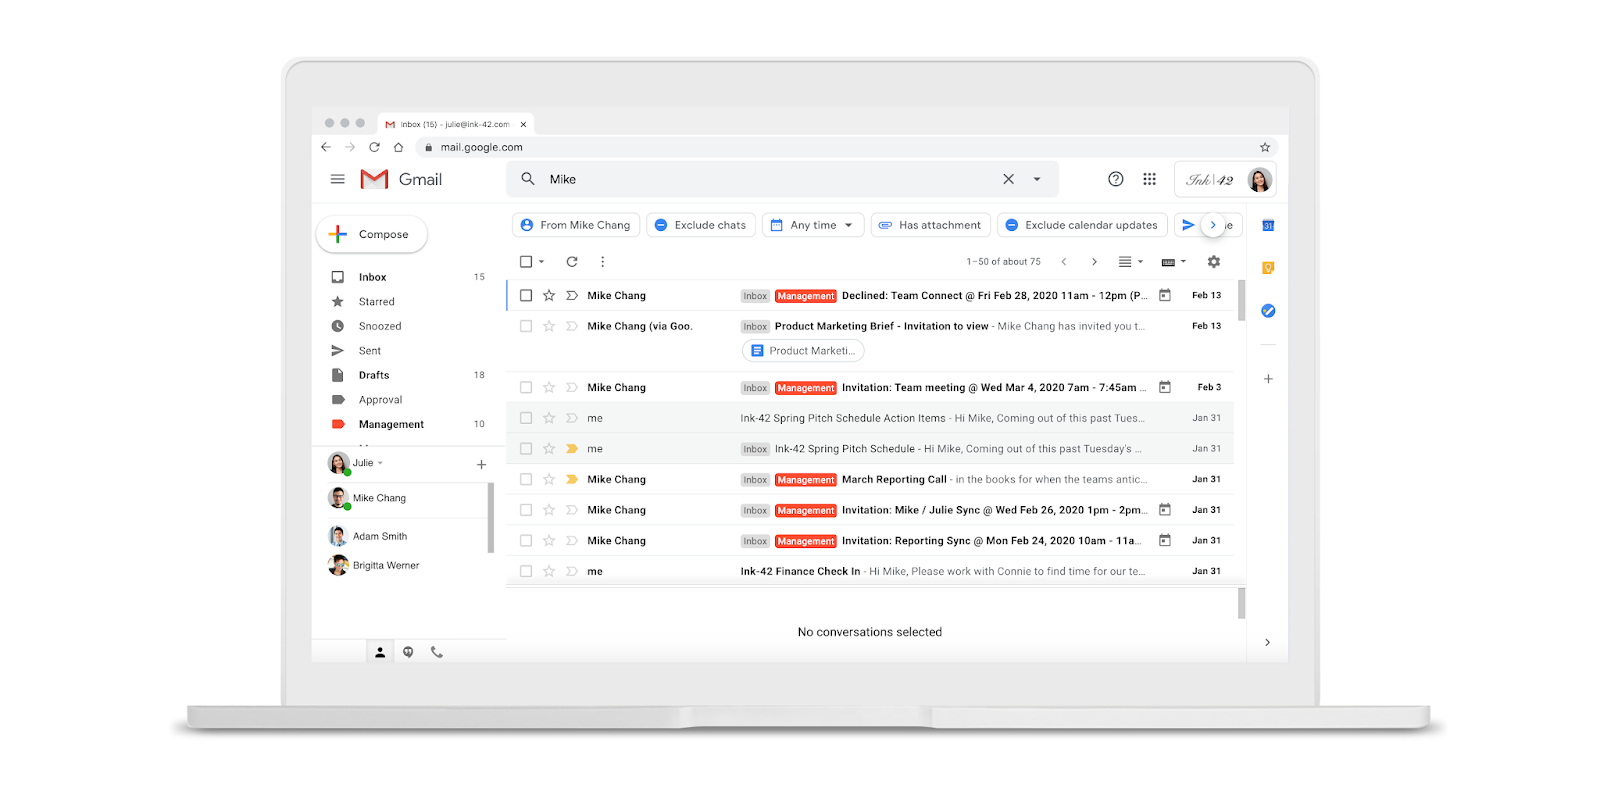 Gmail on the web adding 'search chips' to help filter results - 9to5Google